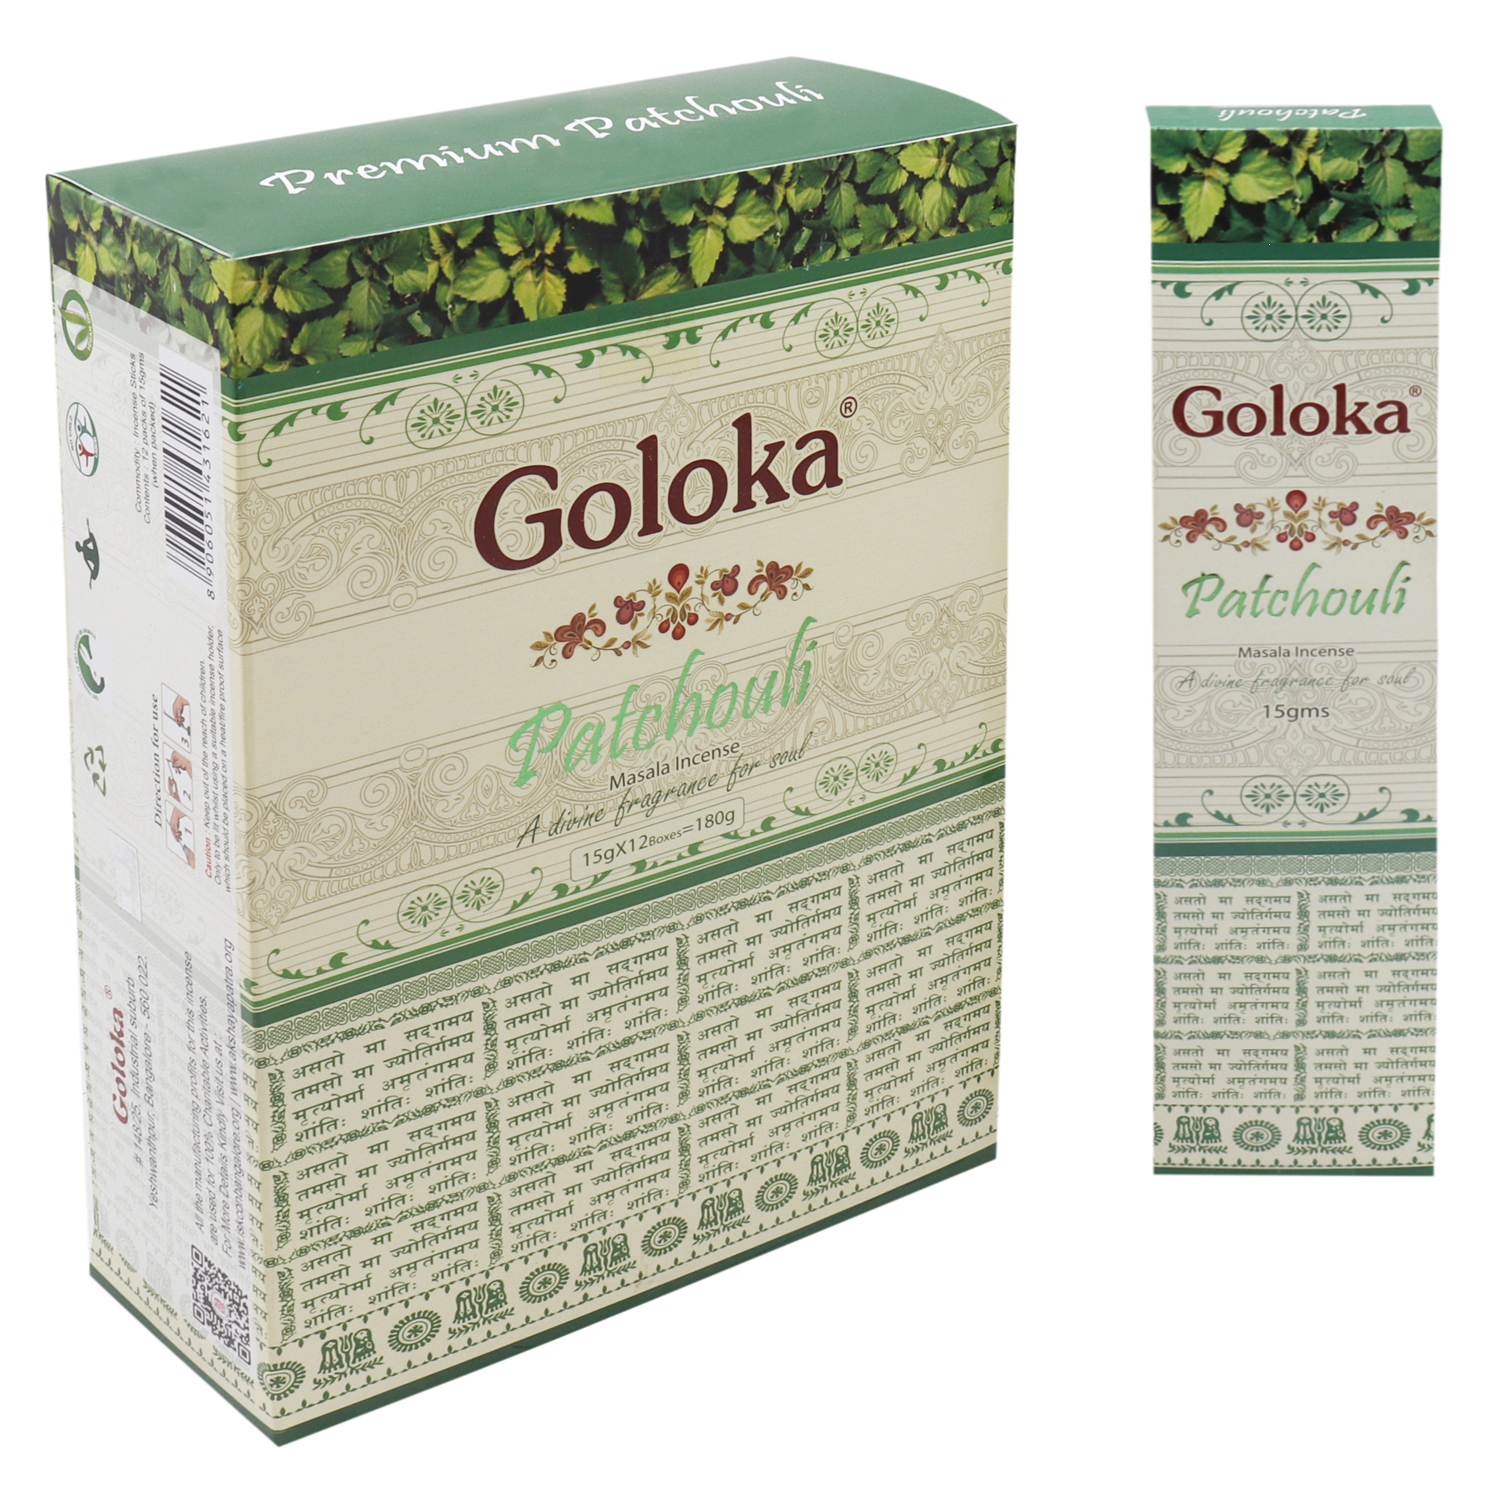 GOLOKA PATCHOULI 15 GM